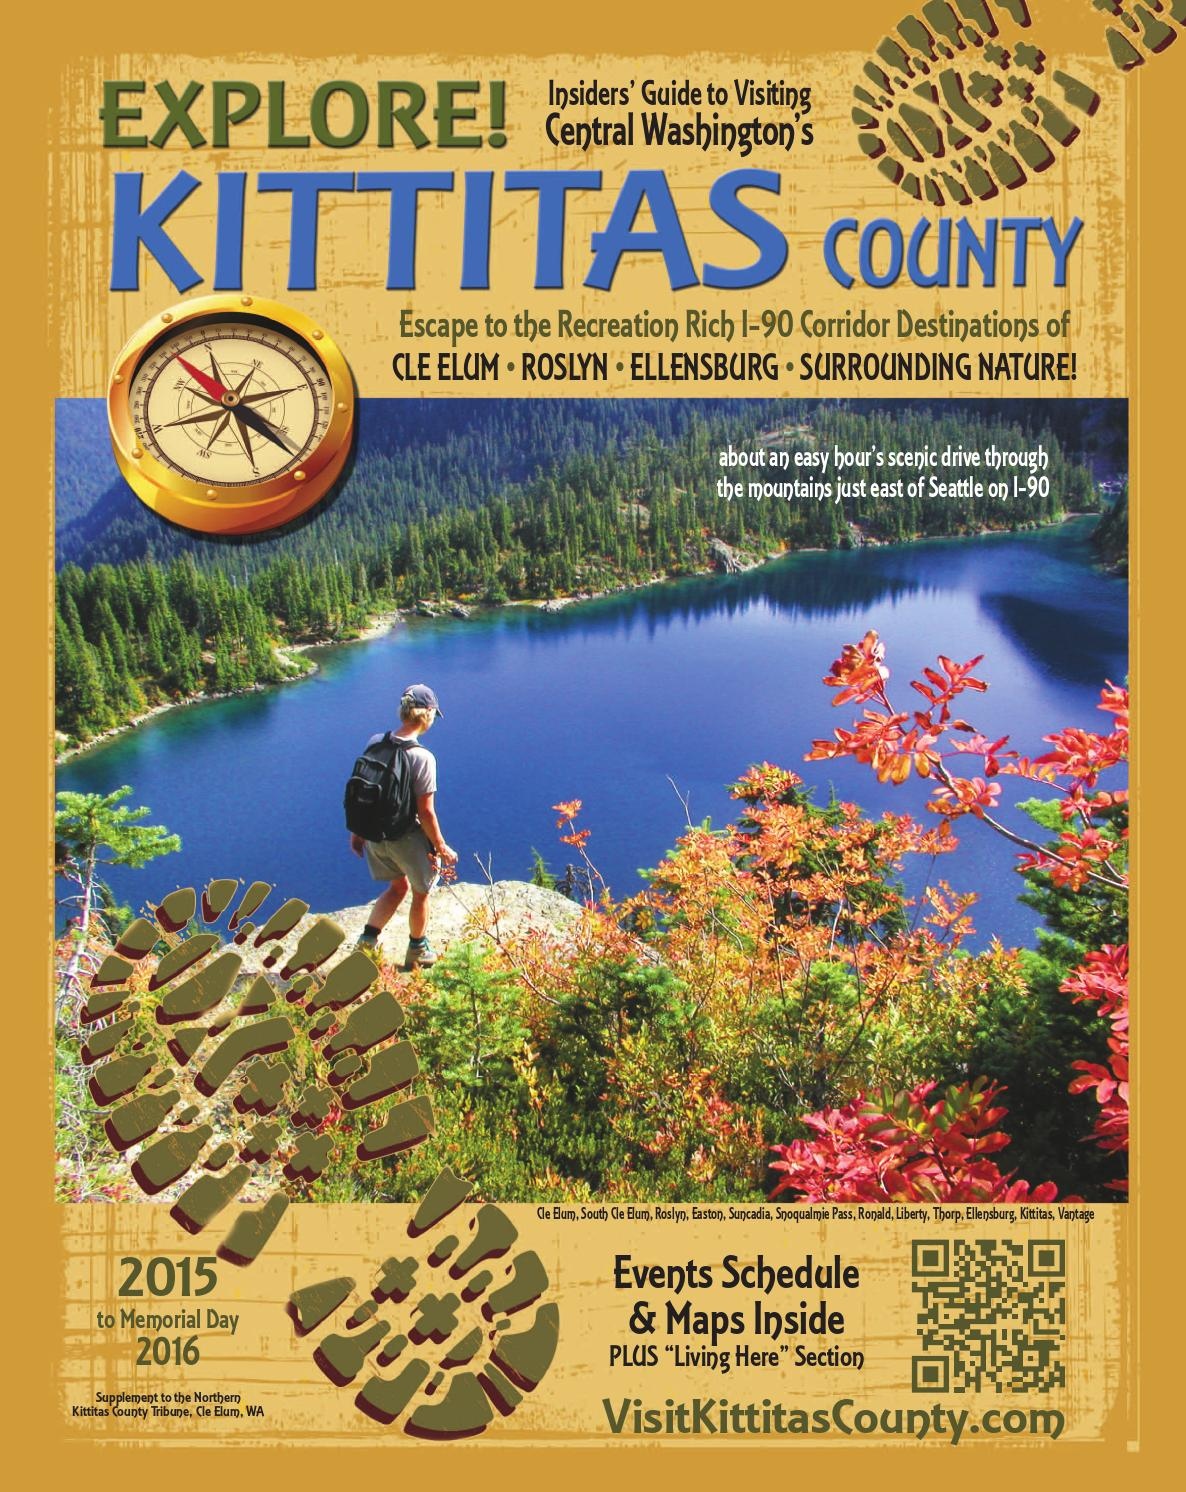 2015 EXPLORE! Kittitas County Visitors Guide by Northern Kittitas County Trib